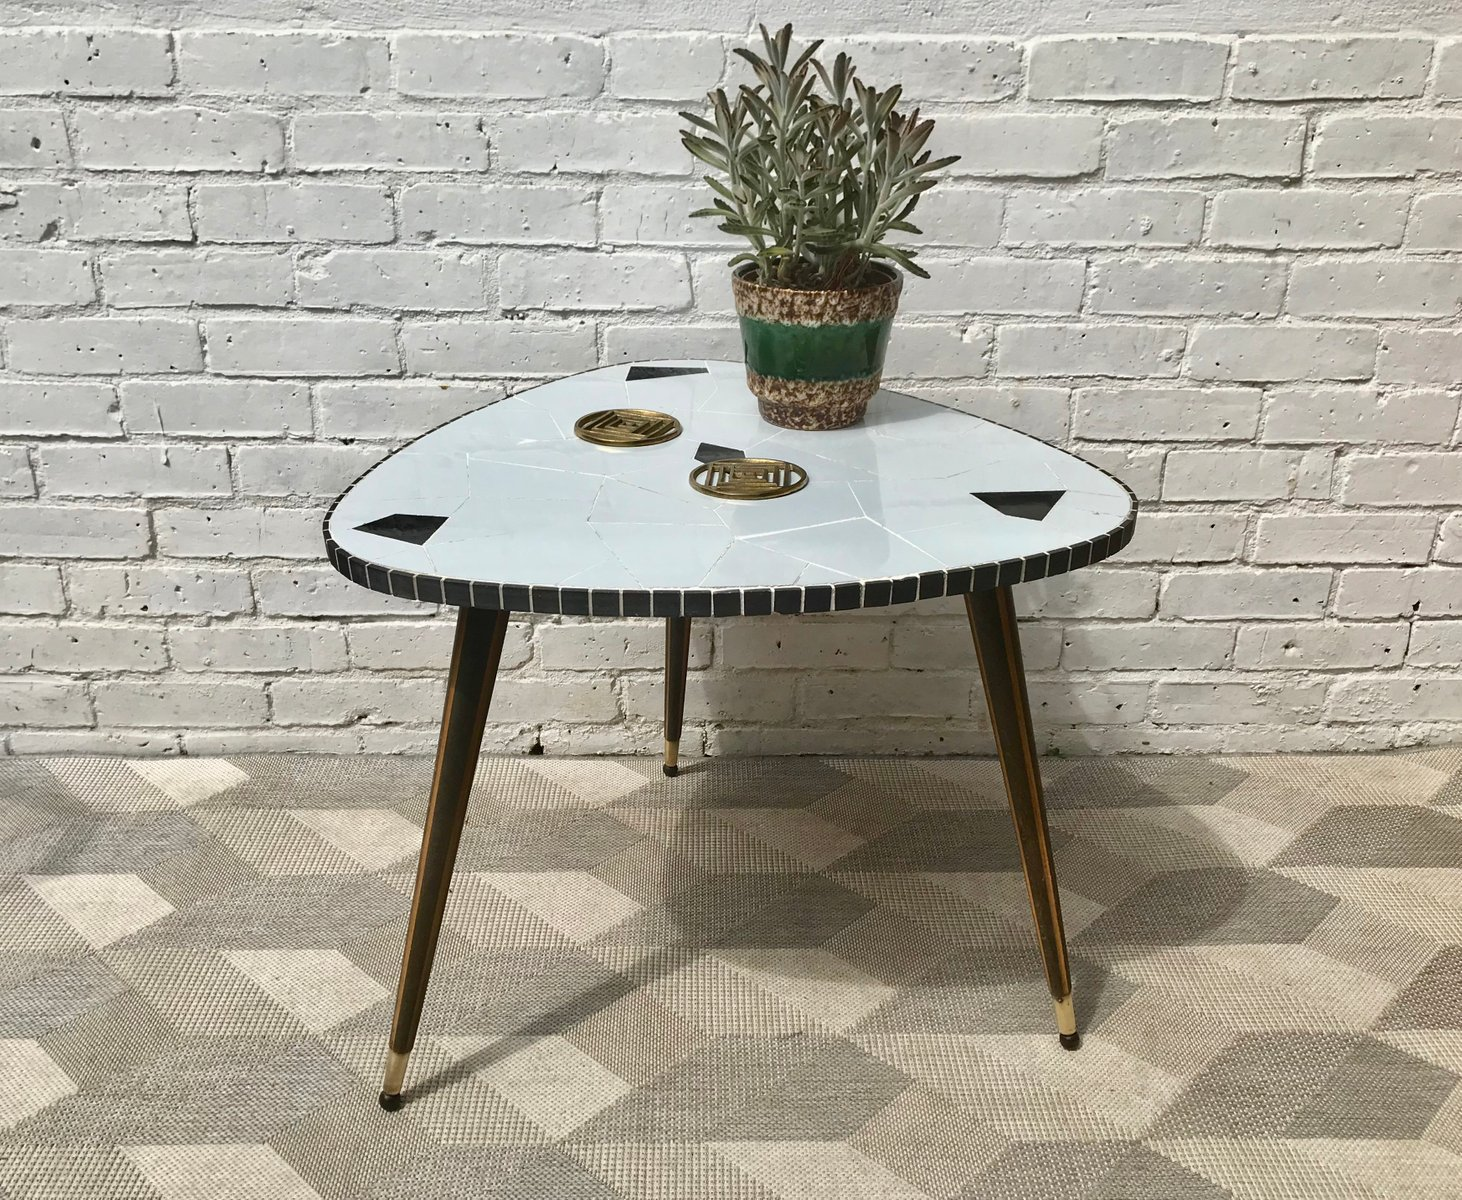 MidCentury Tiled Triangle Side Or Coffee Table S For Sale At - Mid century triangle coffee table